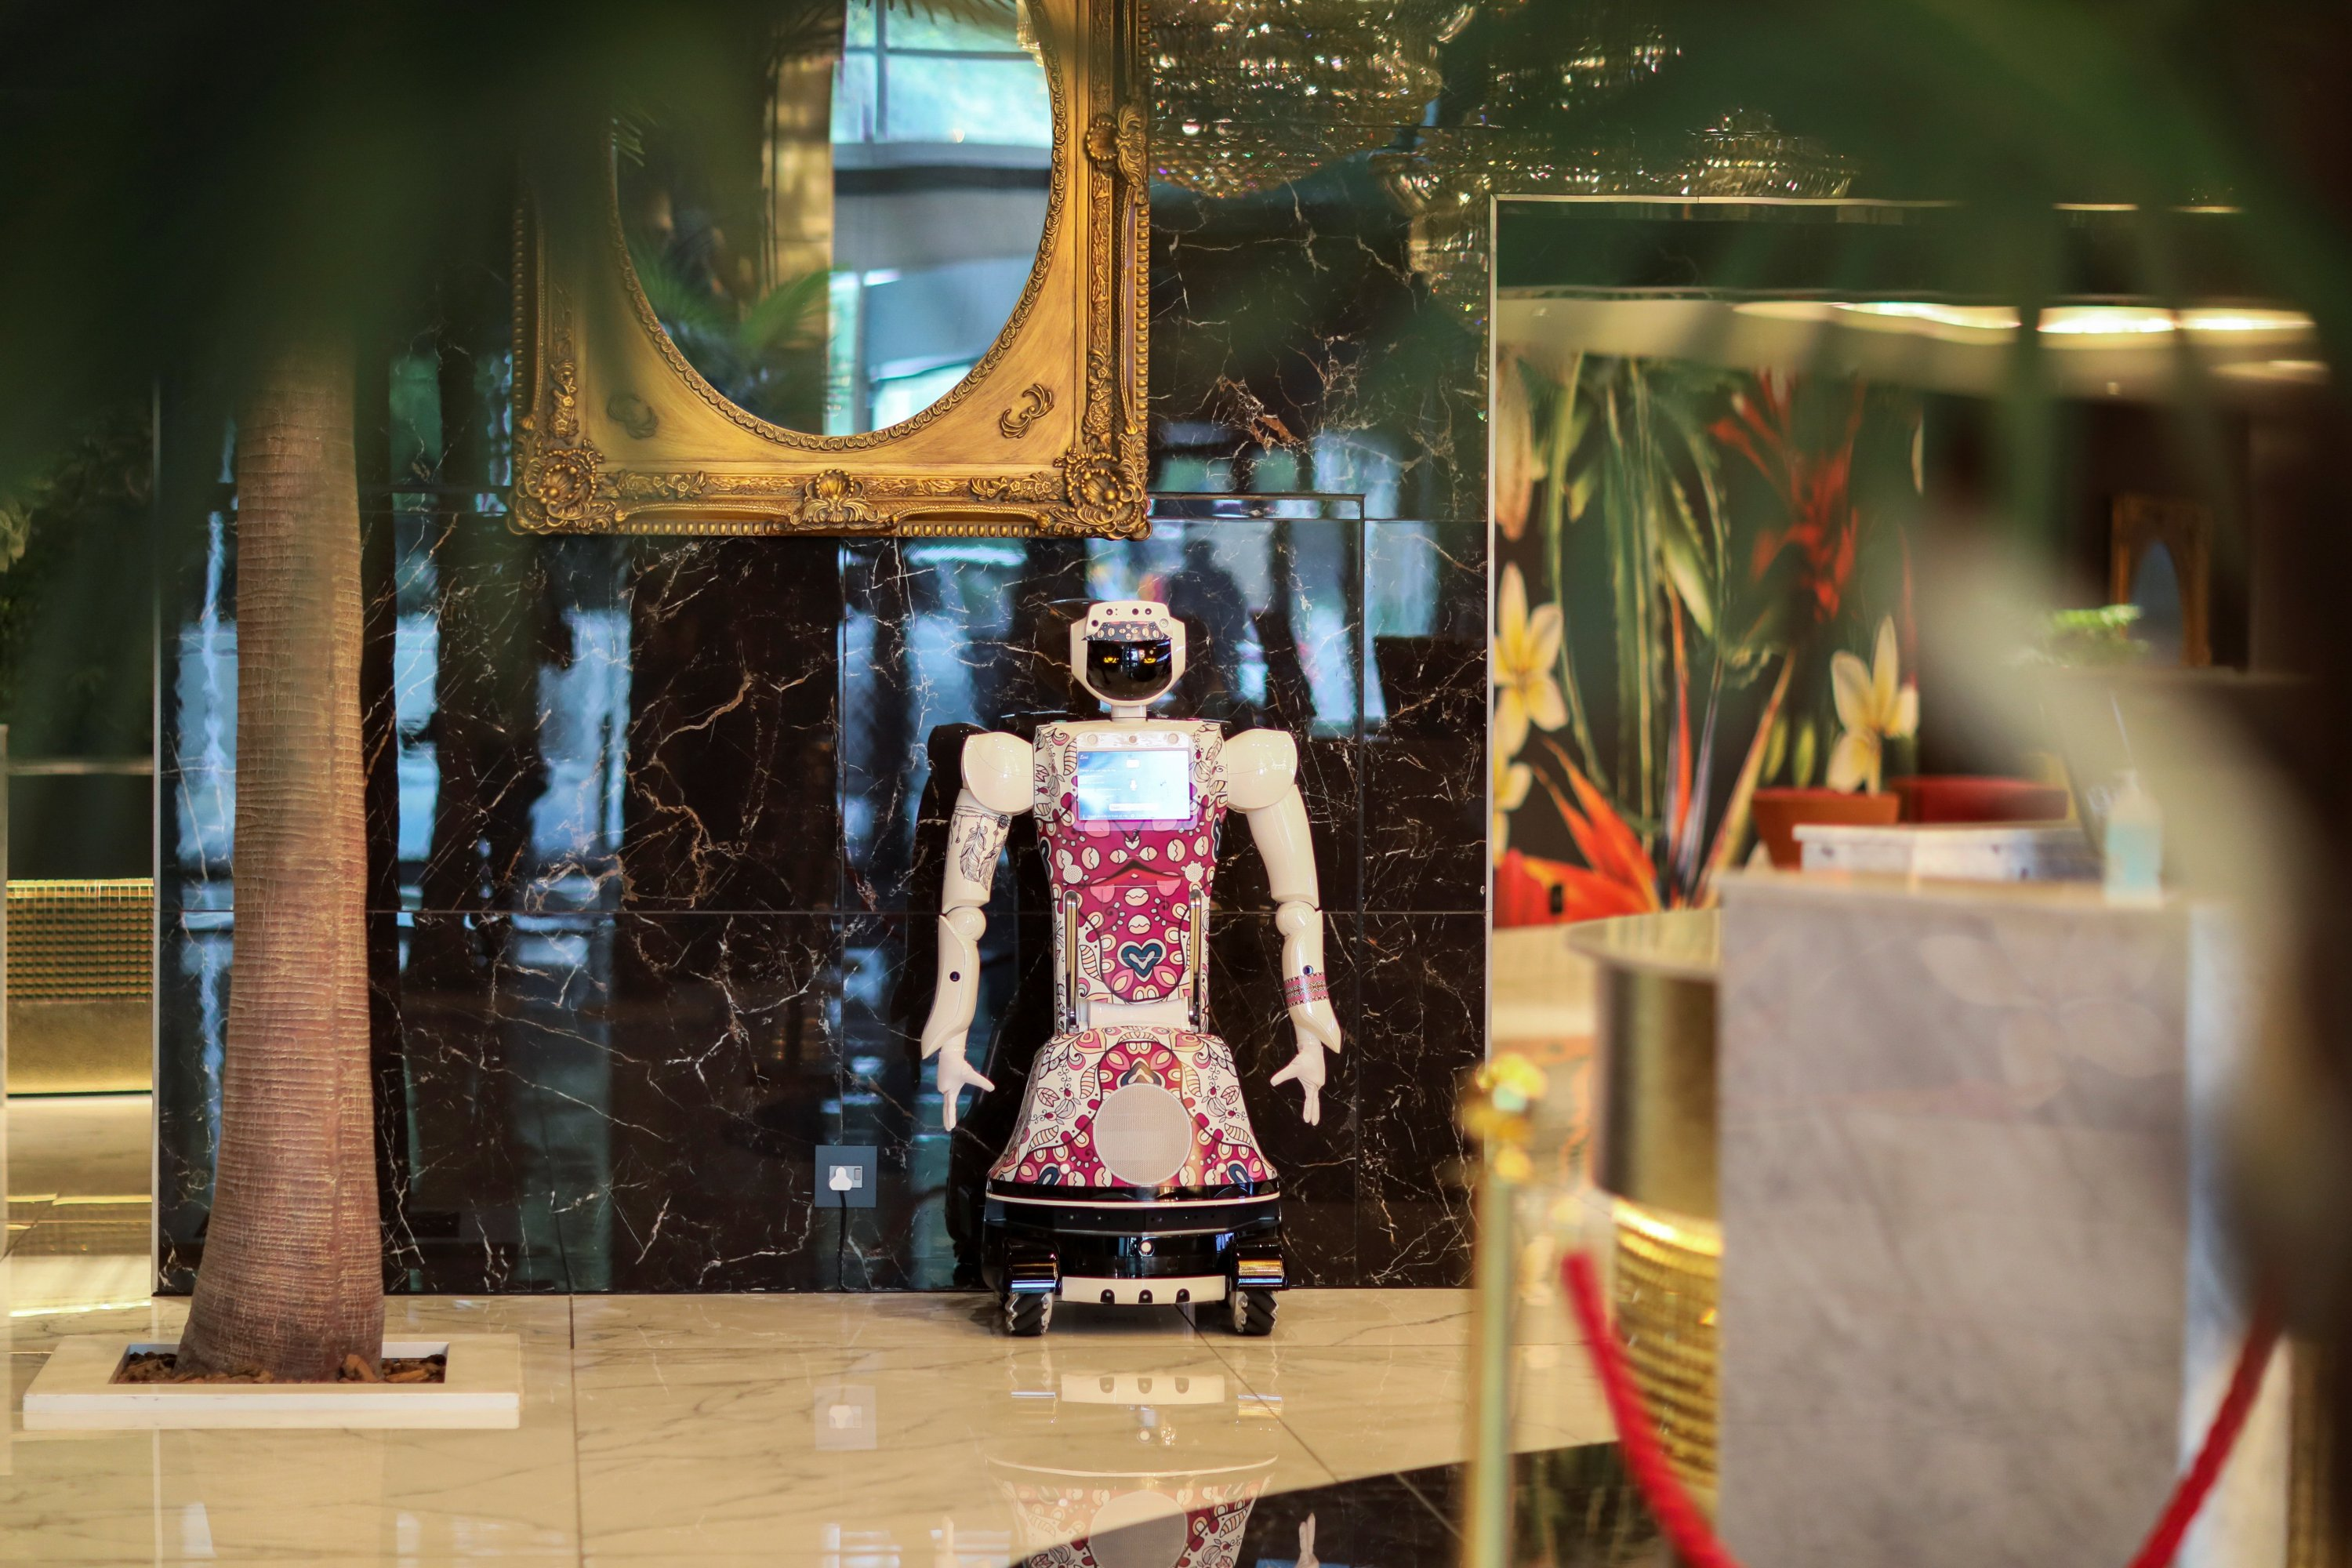 AI-powered robot Lexi stands in the lobby welcoming guests at Hotel Sky,  the first in Africa to use automated attendants, in Johannesburg, South Africa, Feb. 9, 2021. (Reuters Photo)